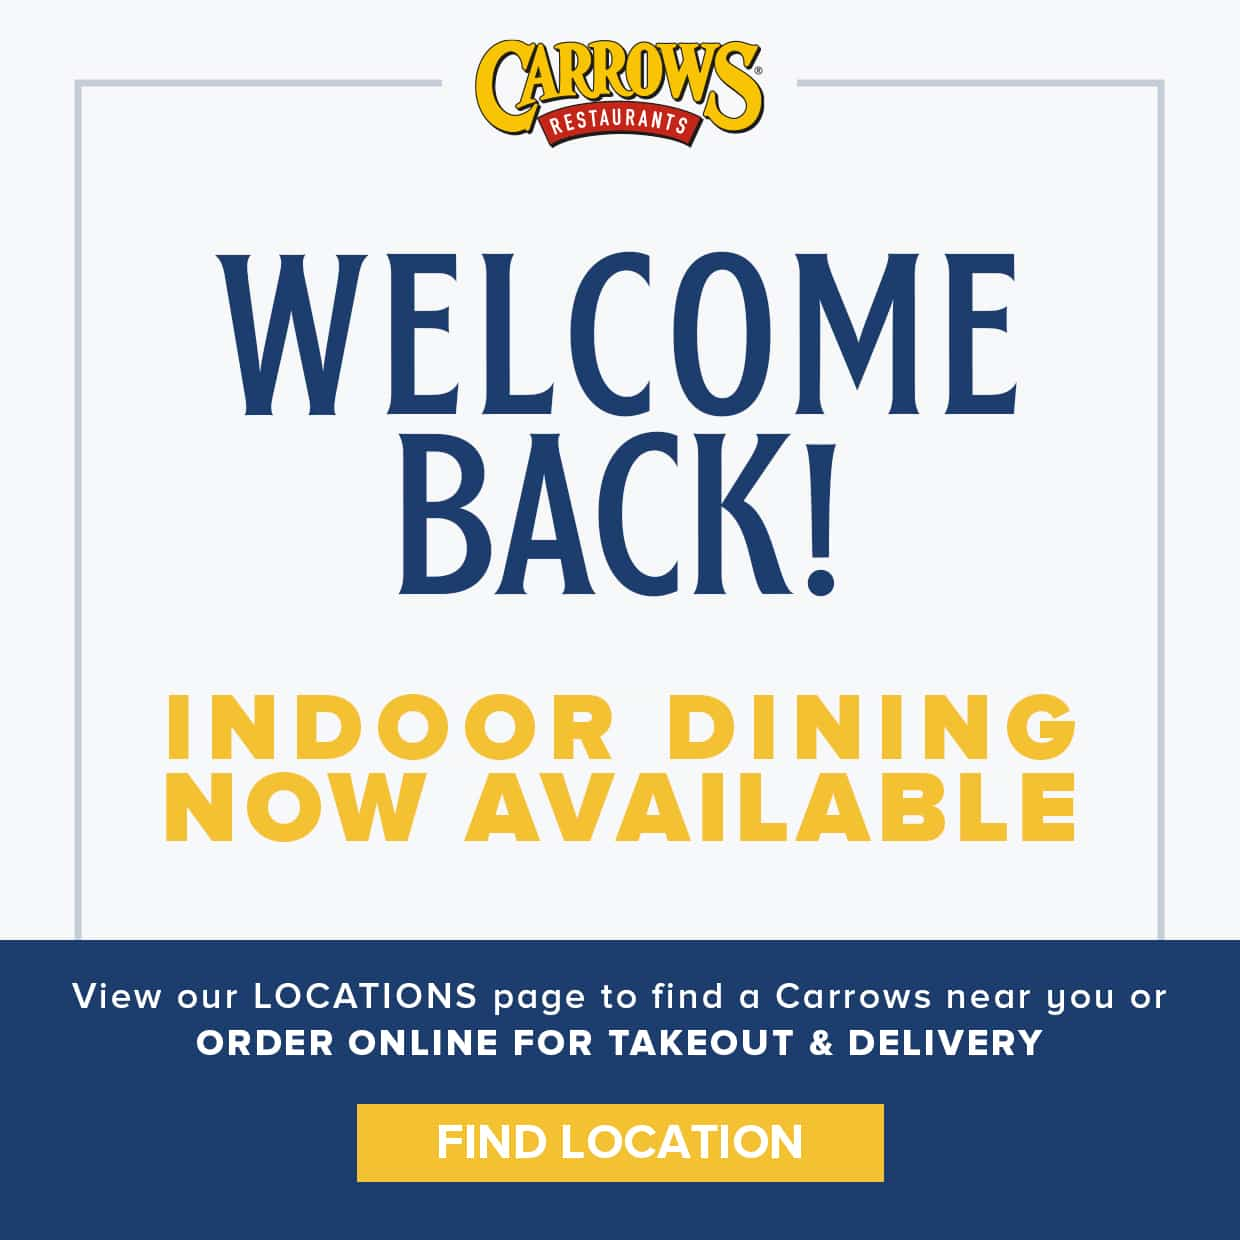 Welcome back! Indoor dining now available. View our locations page to find a Carrows near you or Order Online for Takeout and Delivery. Find Location.